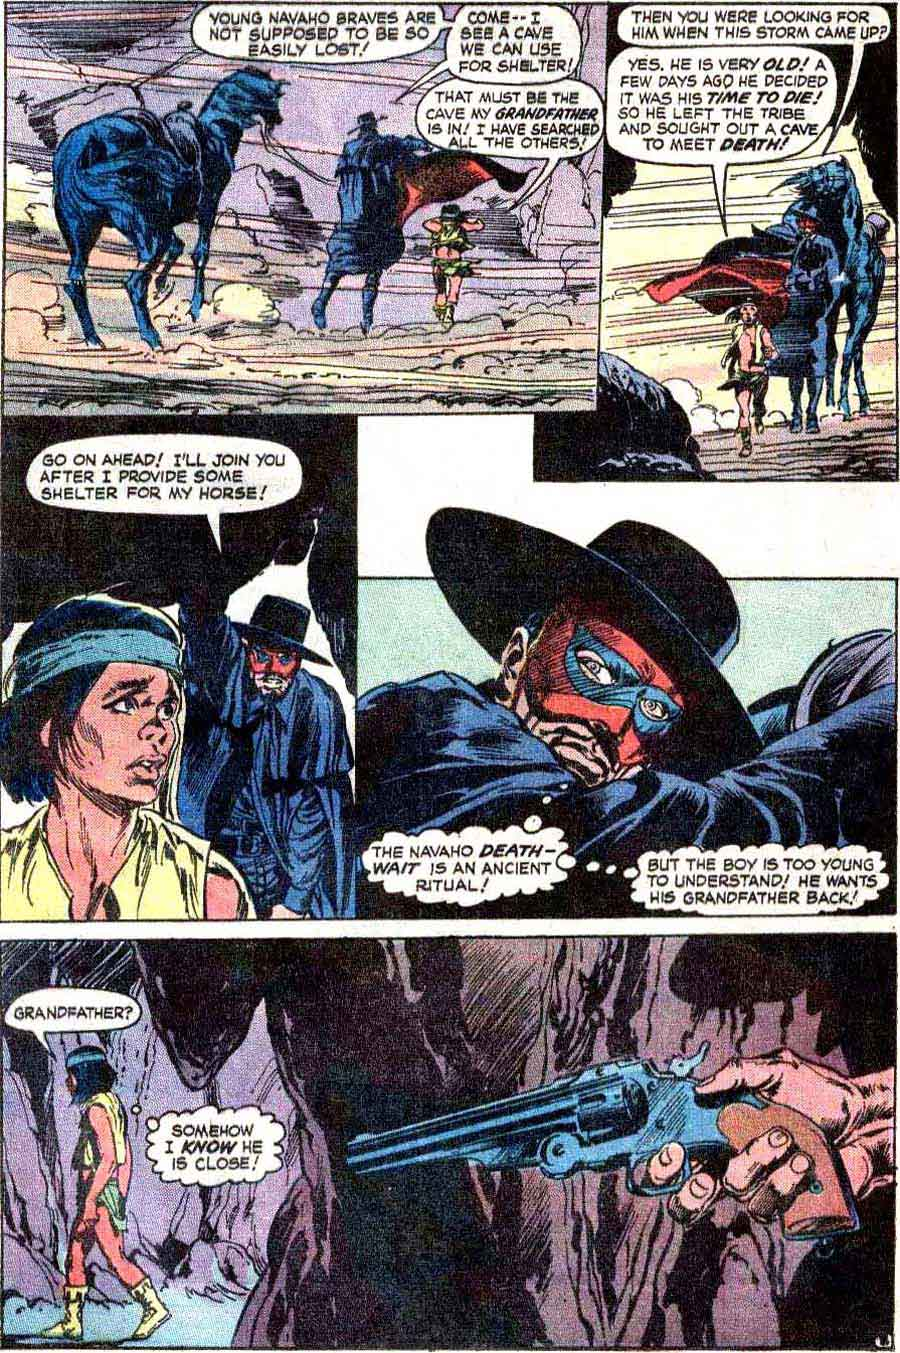 Weird Western Tales v1 #12 dc 1970s bronze age comic book page art by Neal Adams, Bernie Wrightson